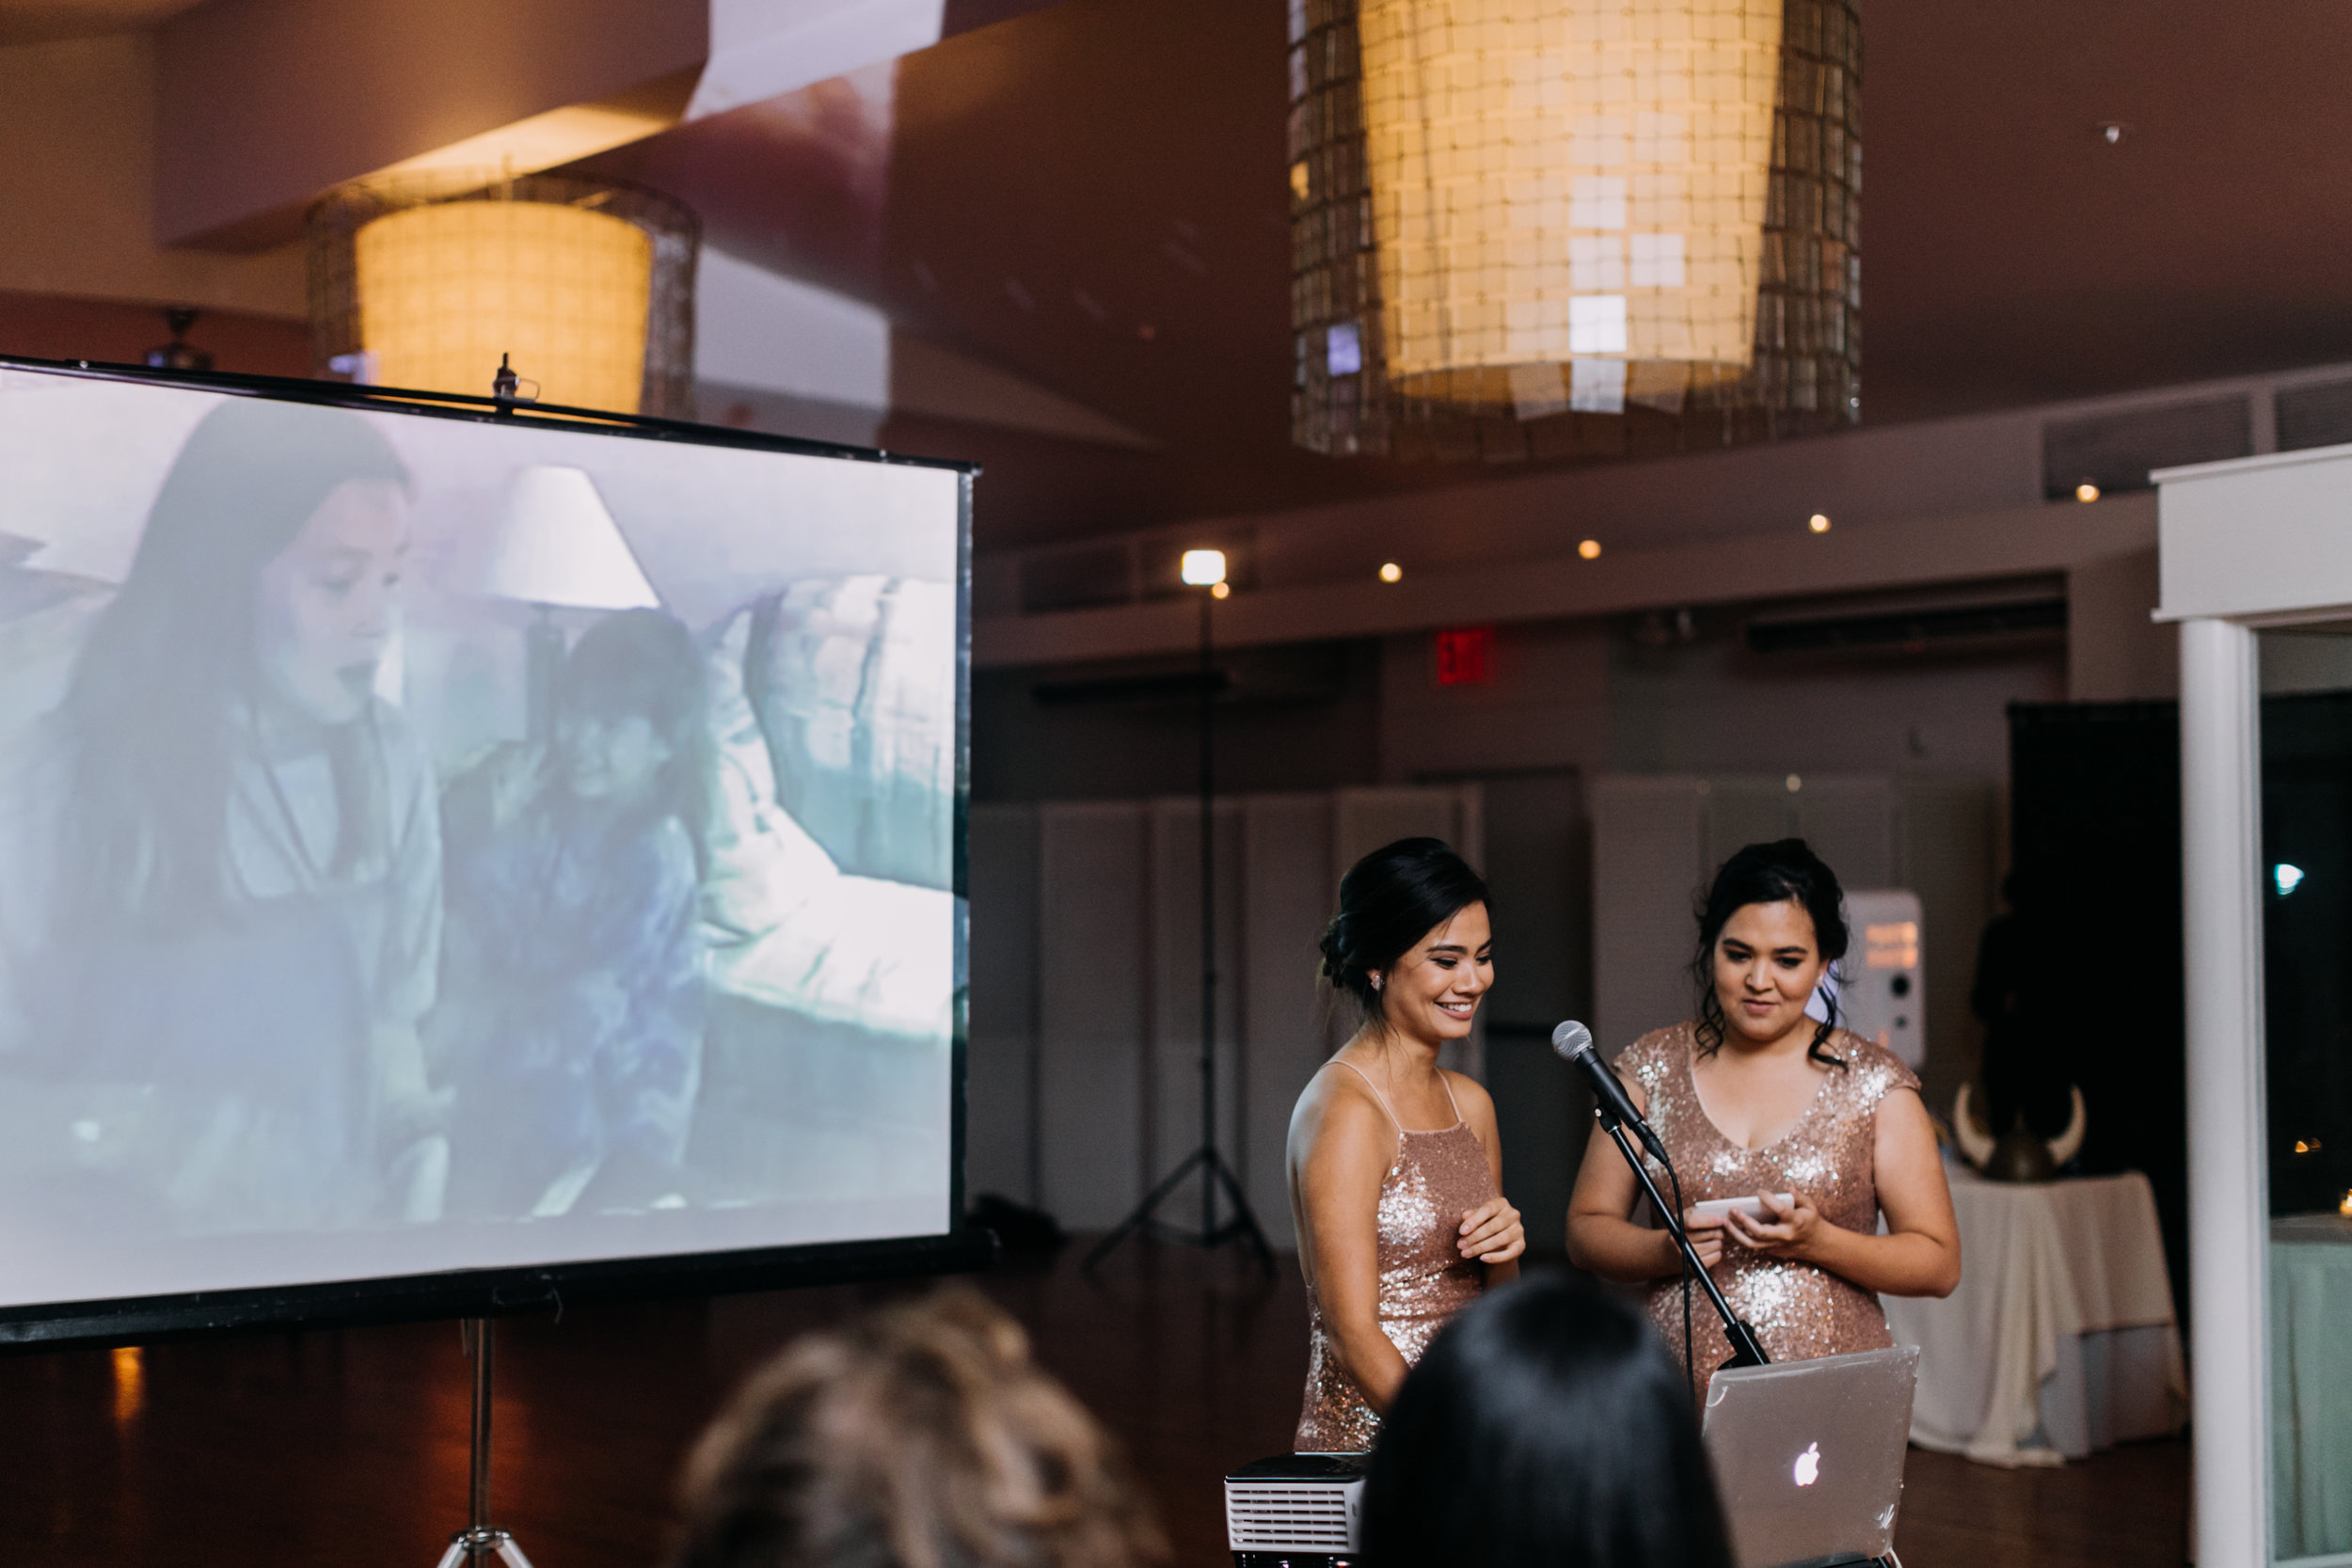 My sisters giving their speech, which included clips from home videos and singing a camp song we used to harmonize on car trips together when we were kids (with the lyrics rewritten)!